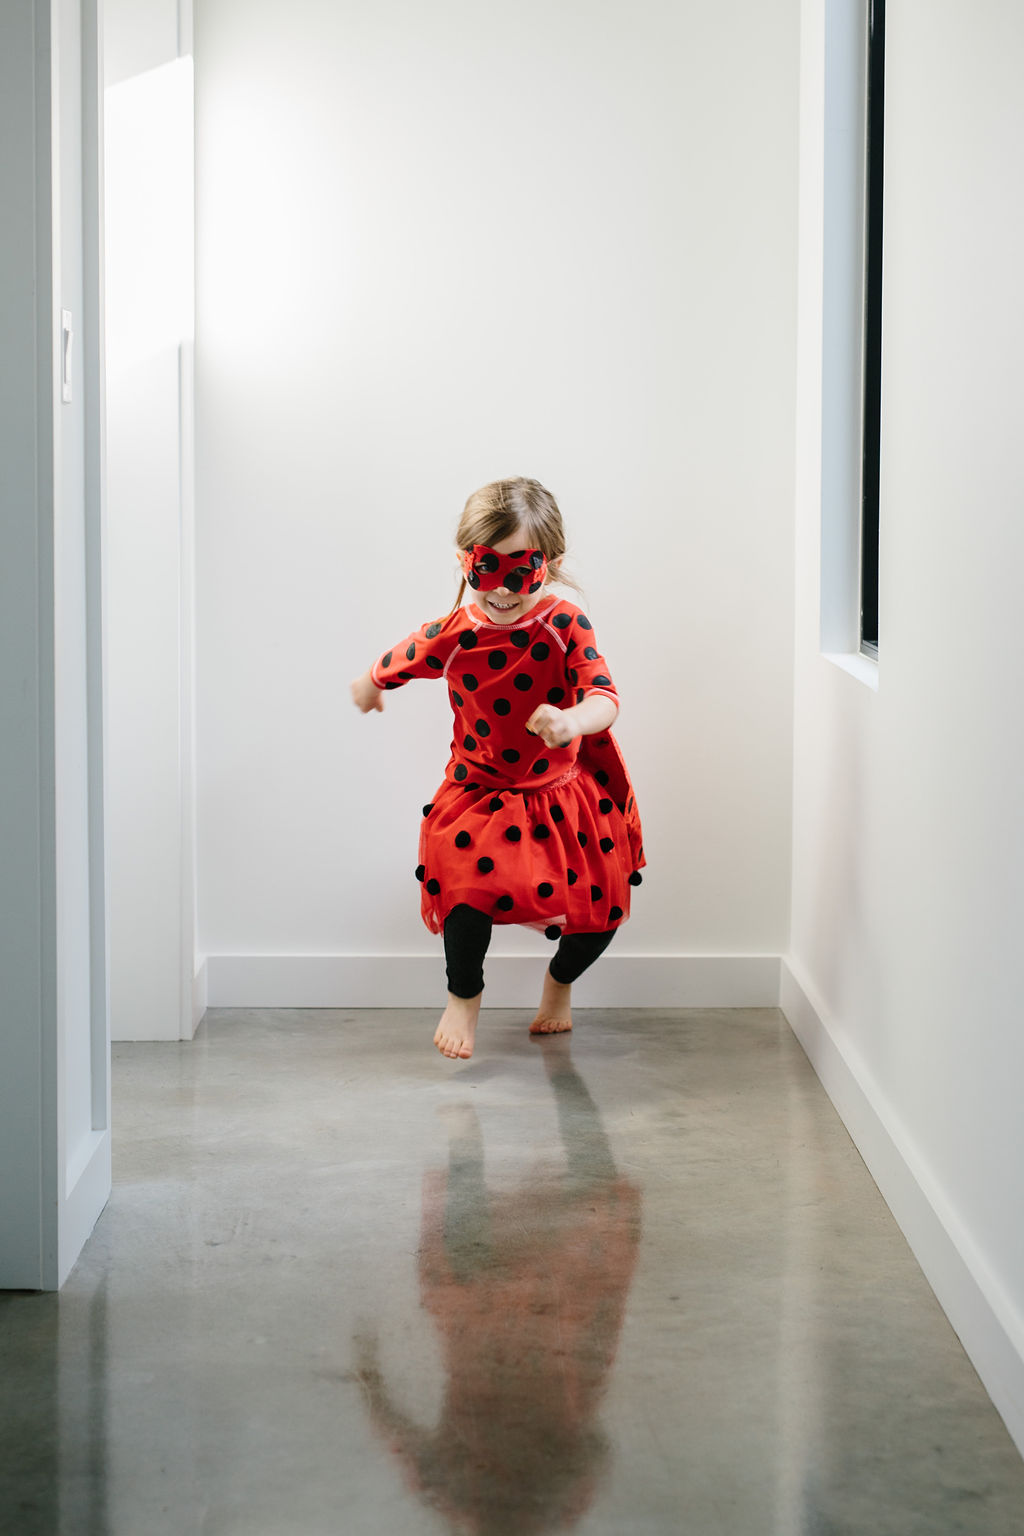 A child running in the miraculous ladybug costume